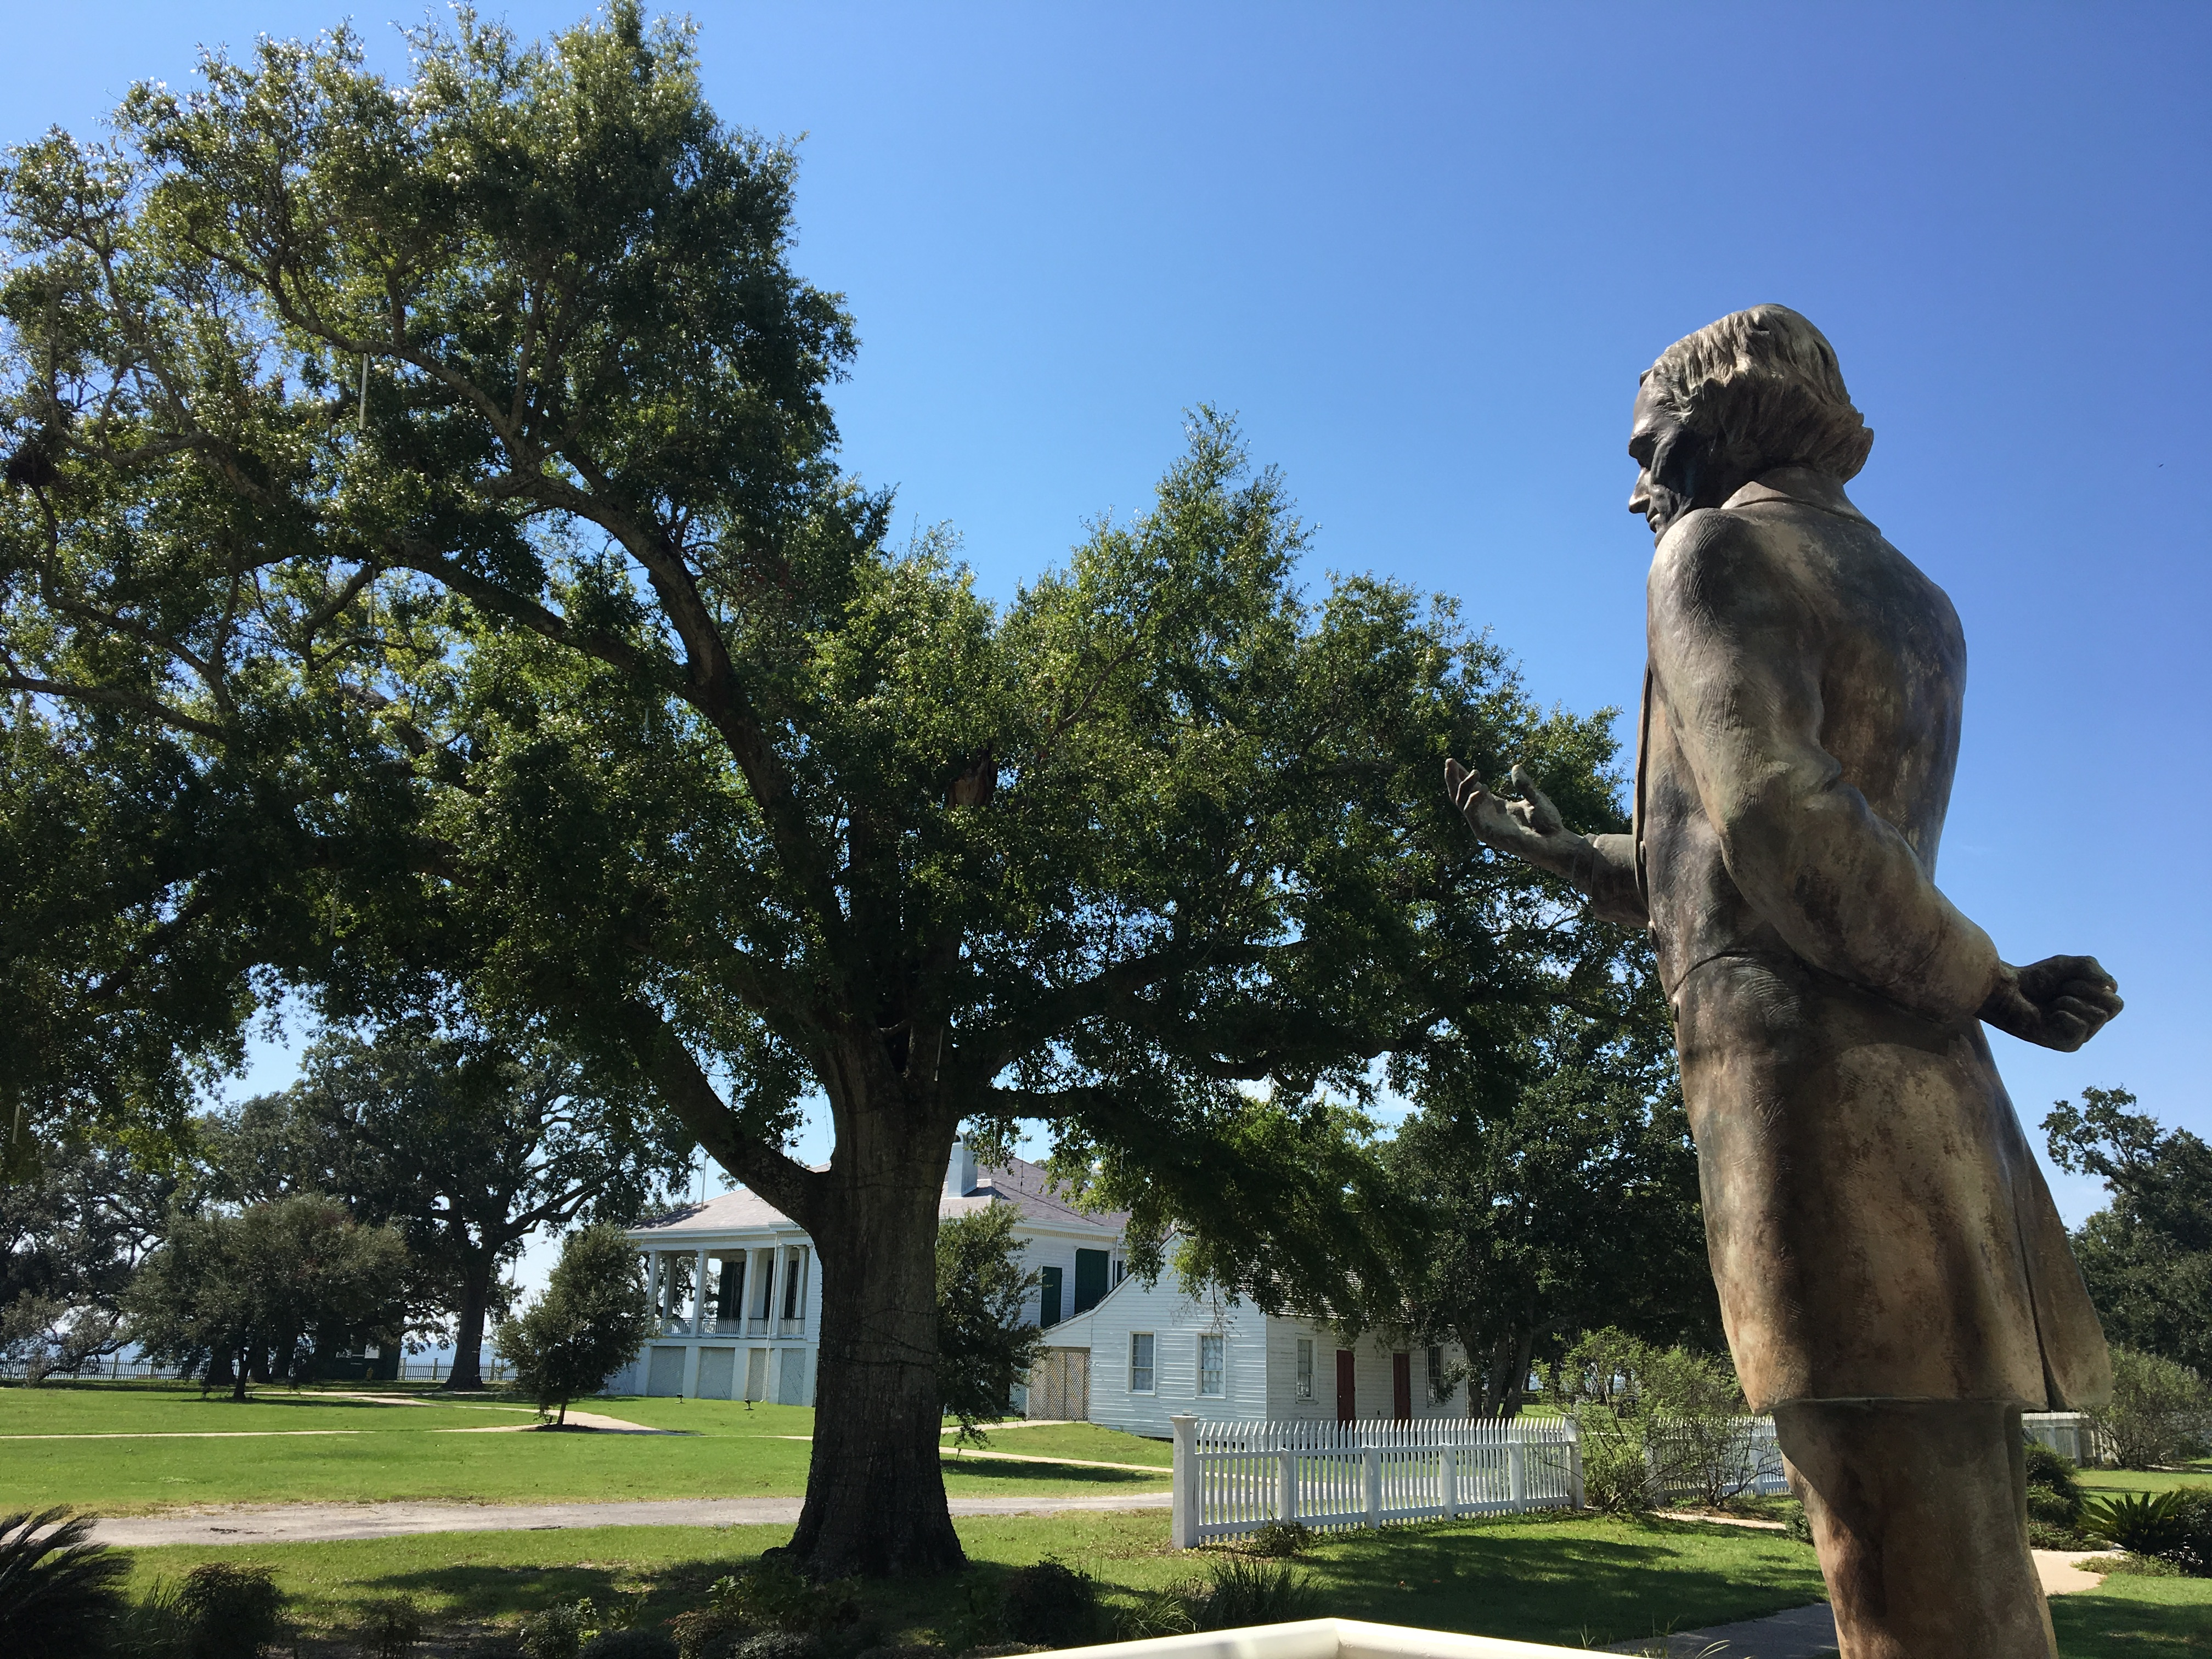 Face of jesus can be seen on gulfport tree